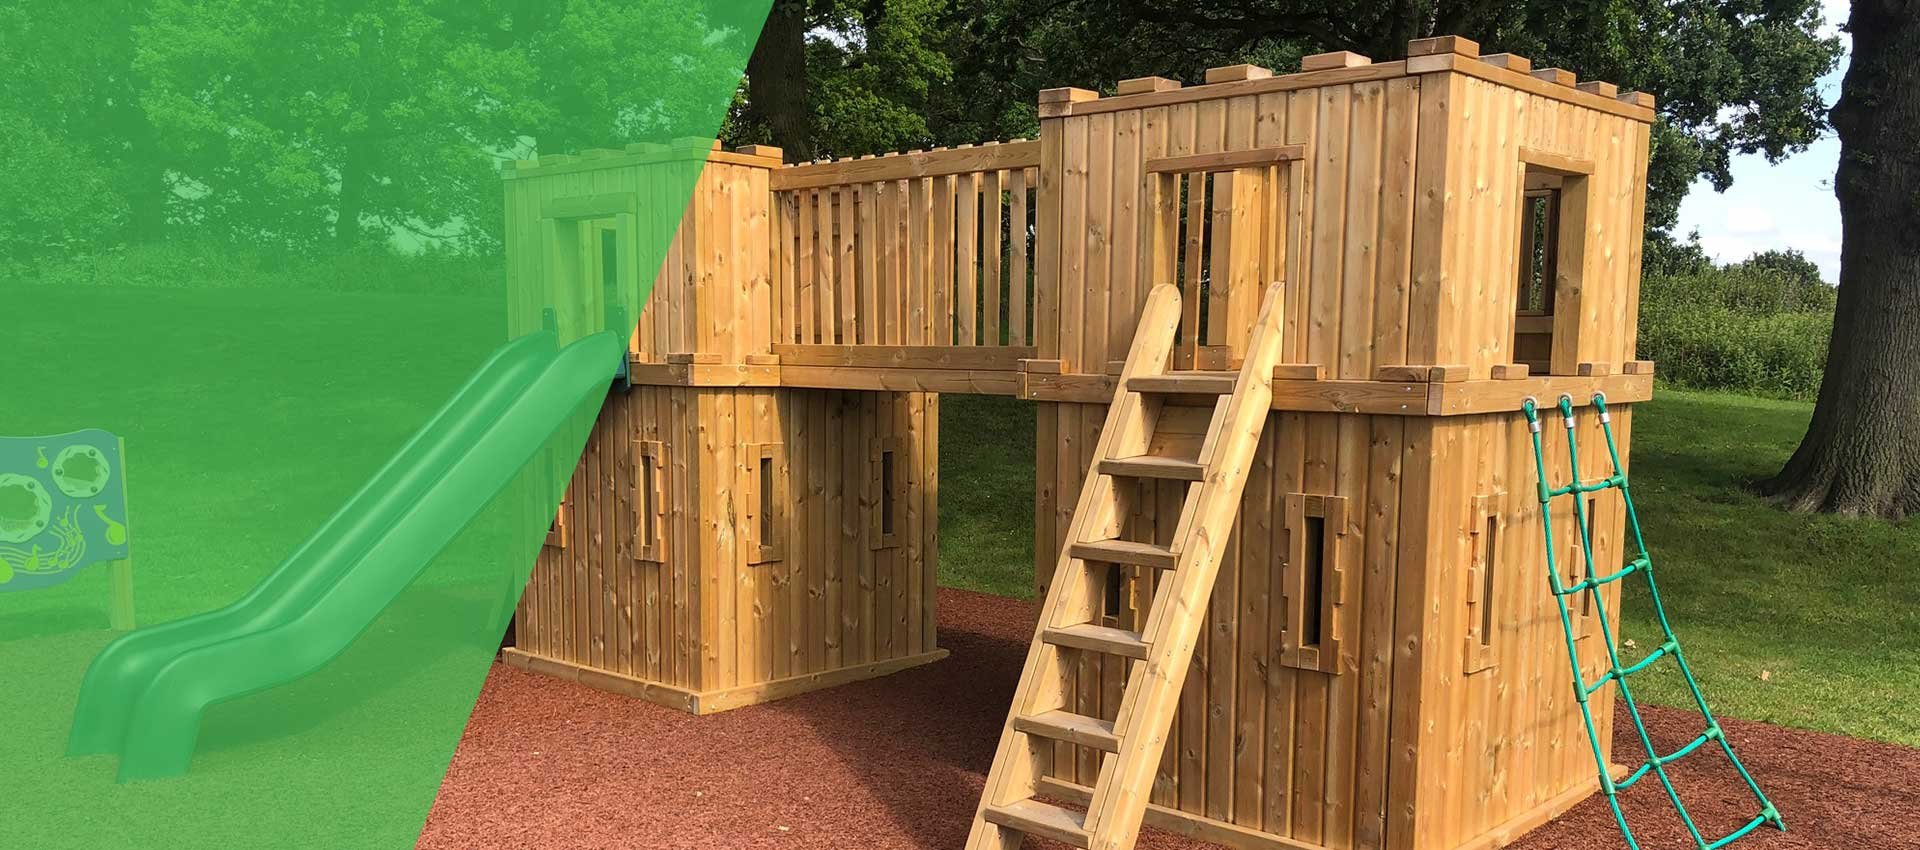 Wooden Castle Play Towers